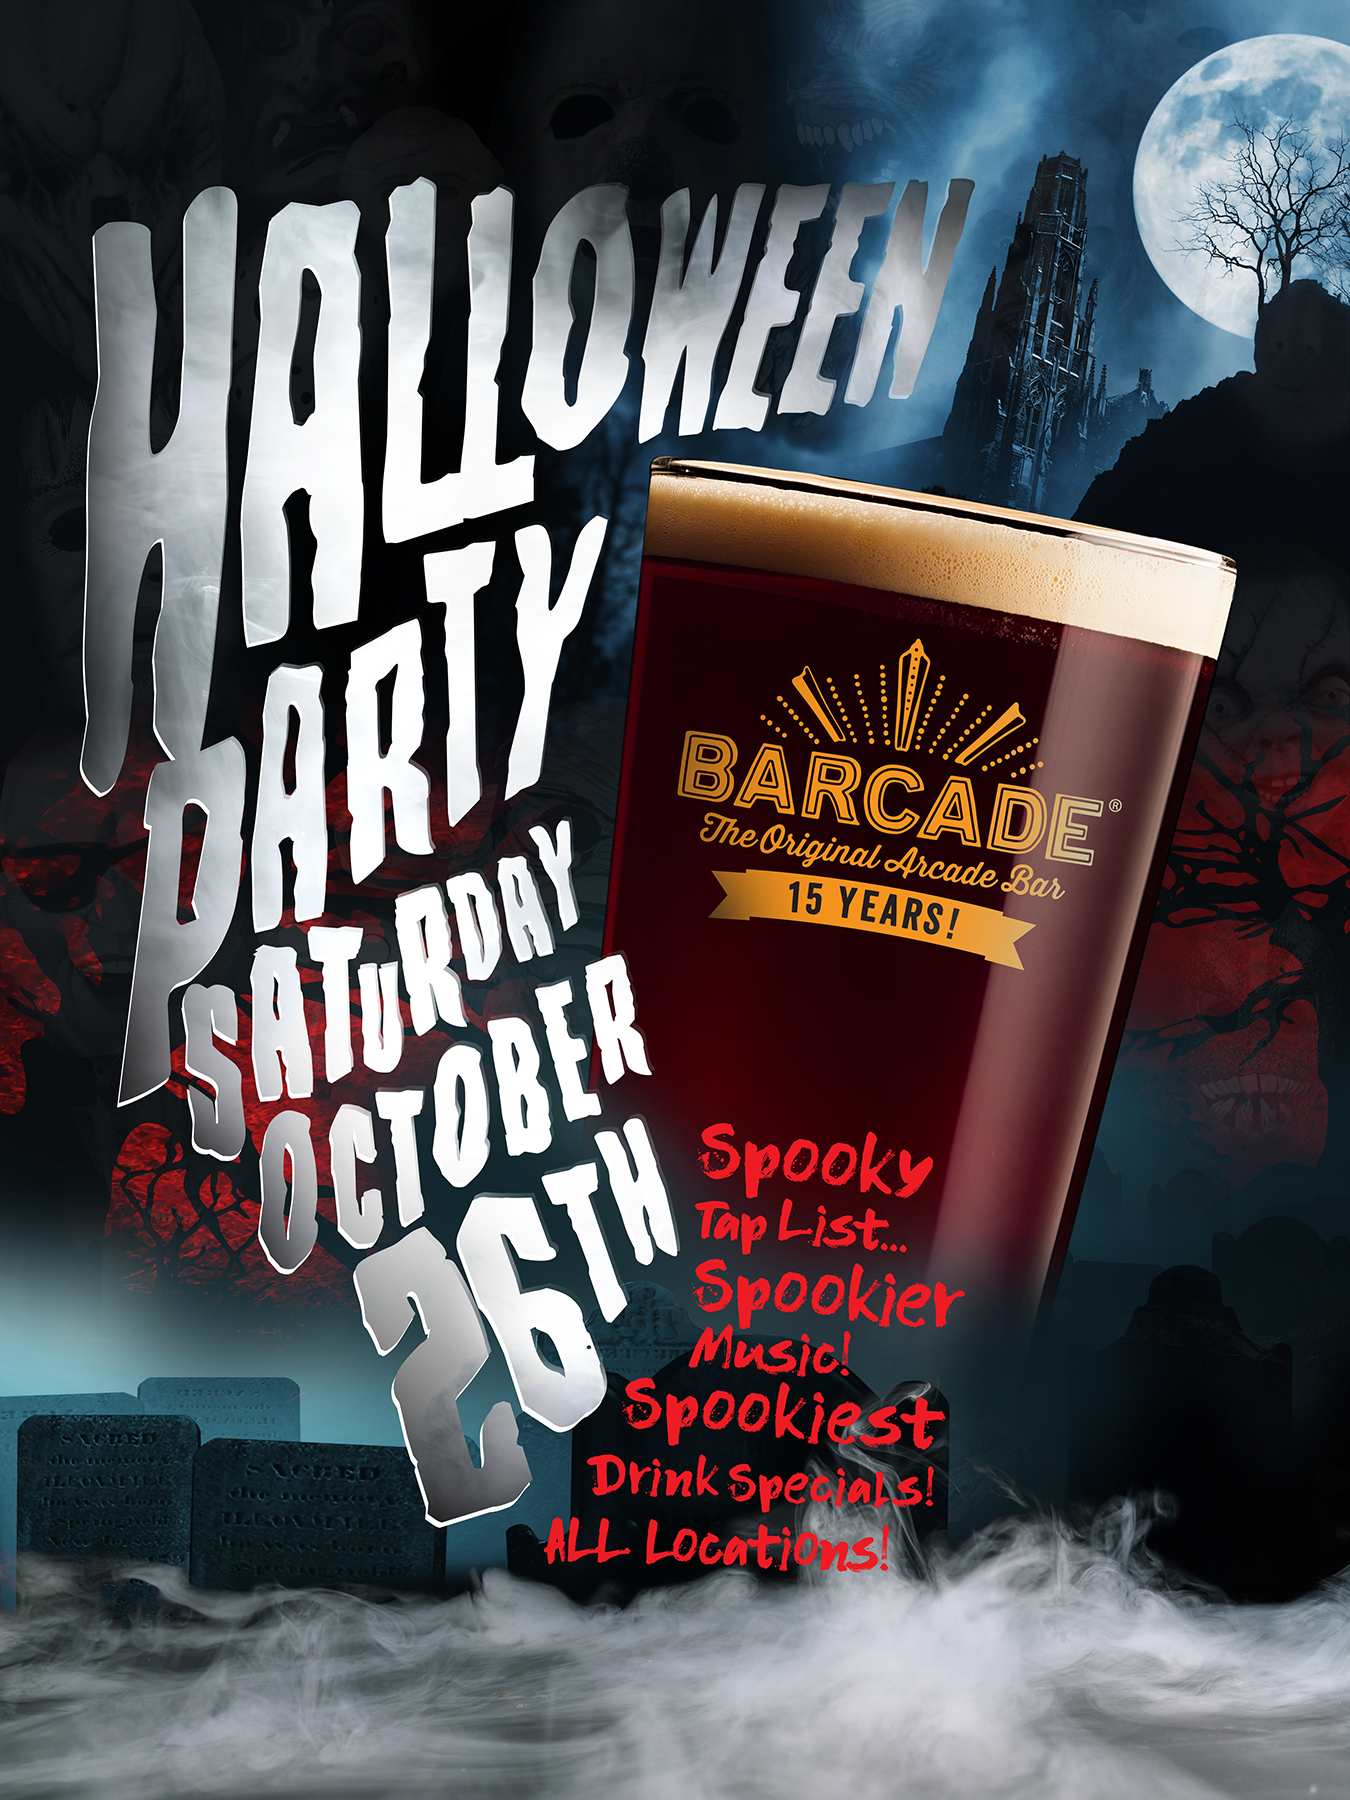 Halloween Party at Barcade on Saturday, October 26th in Newark, NJ.